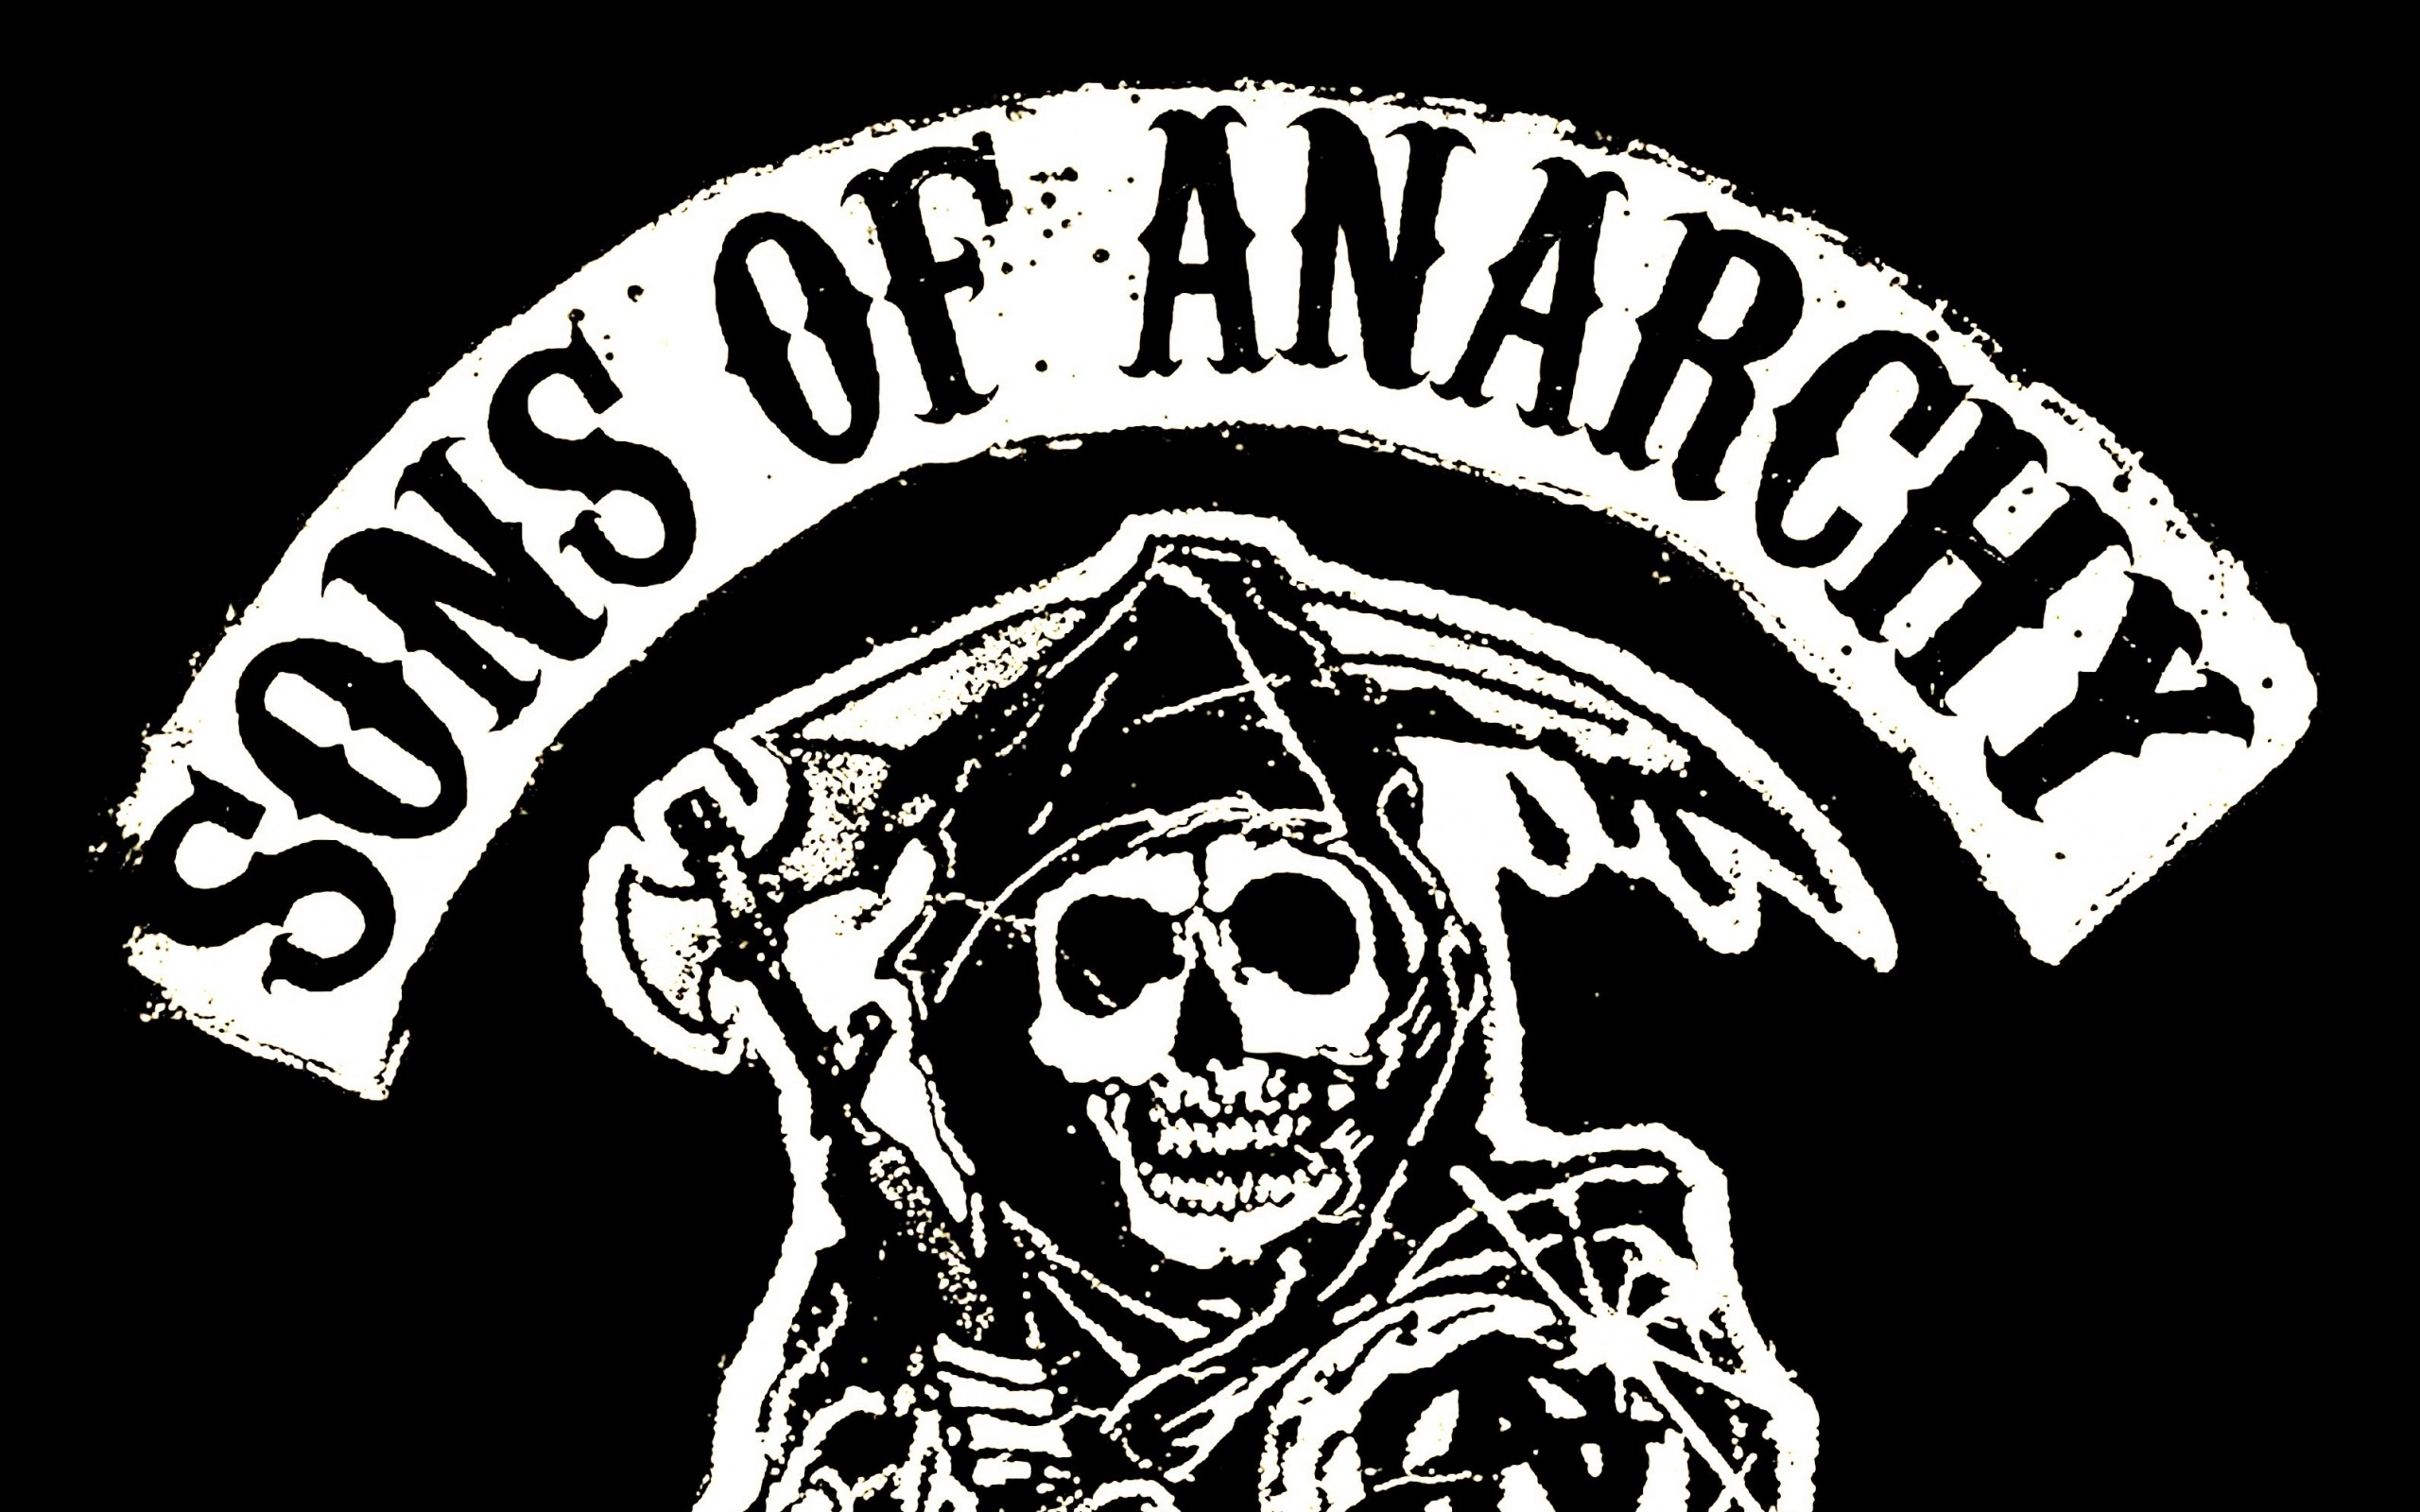 Christmas Wallpaper Iphone 5 Sons Of Anarchy Wallpapers For Cell Phone 54 Images